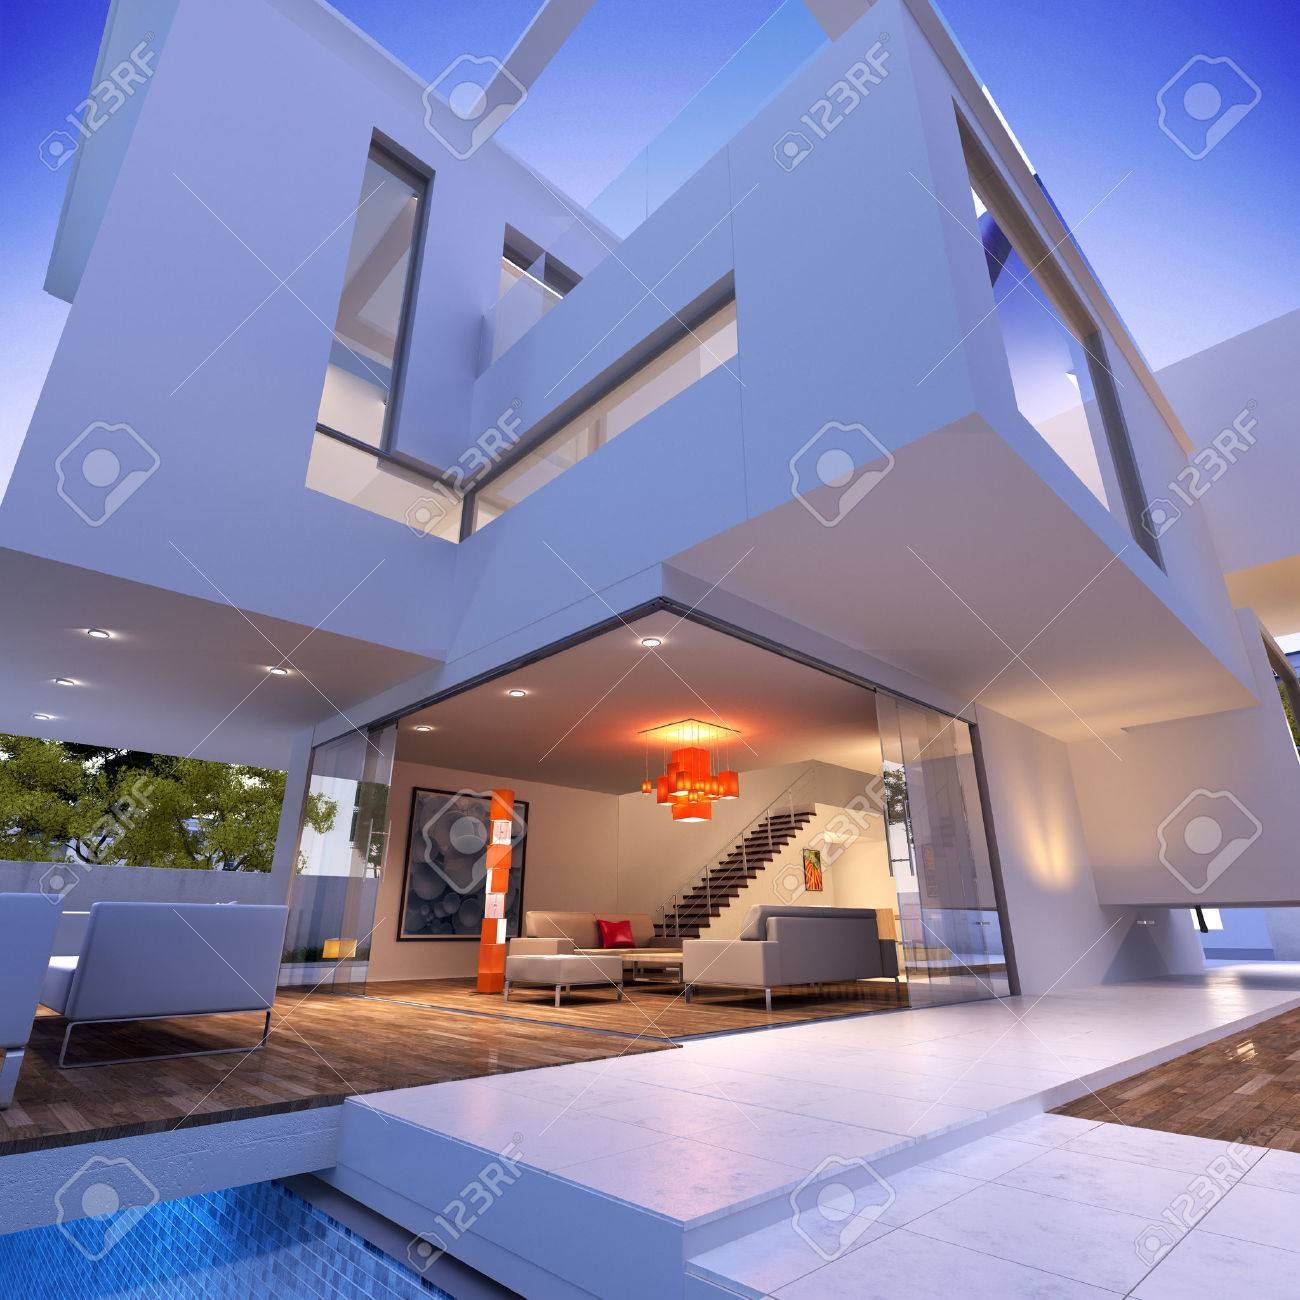 External View Of A Contemporary House With Pool At Dusk Stock Photo ...